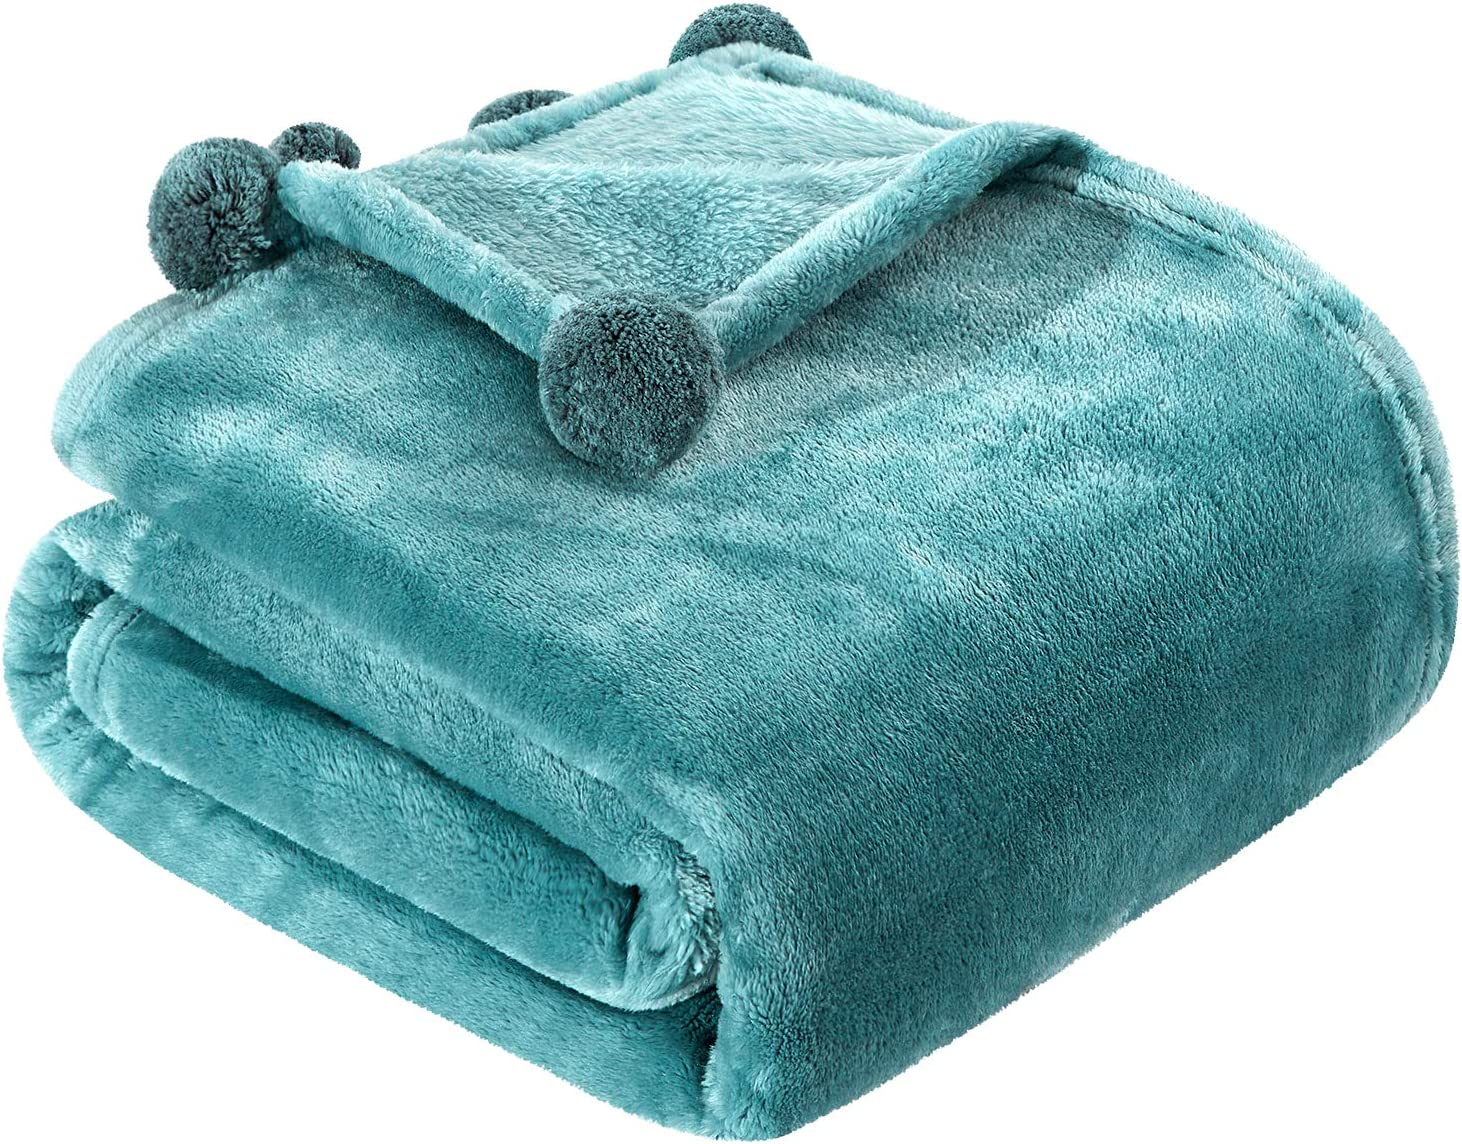 HOMEIDEASFleece Gifts Flannel ThrowBlanket Pompom New color with Fringe